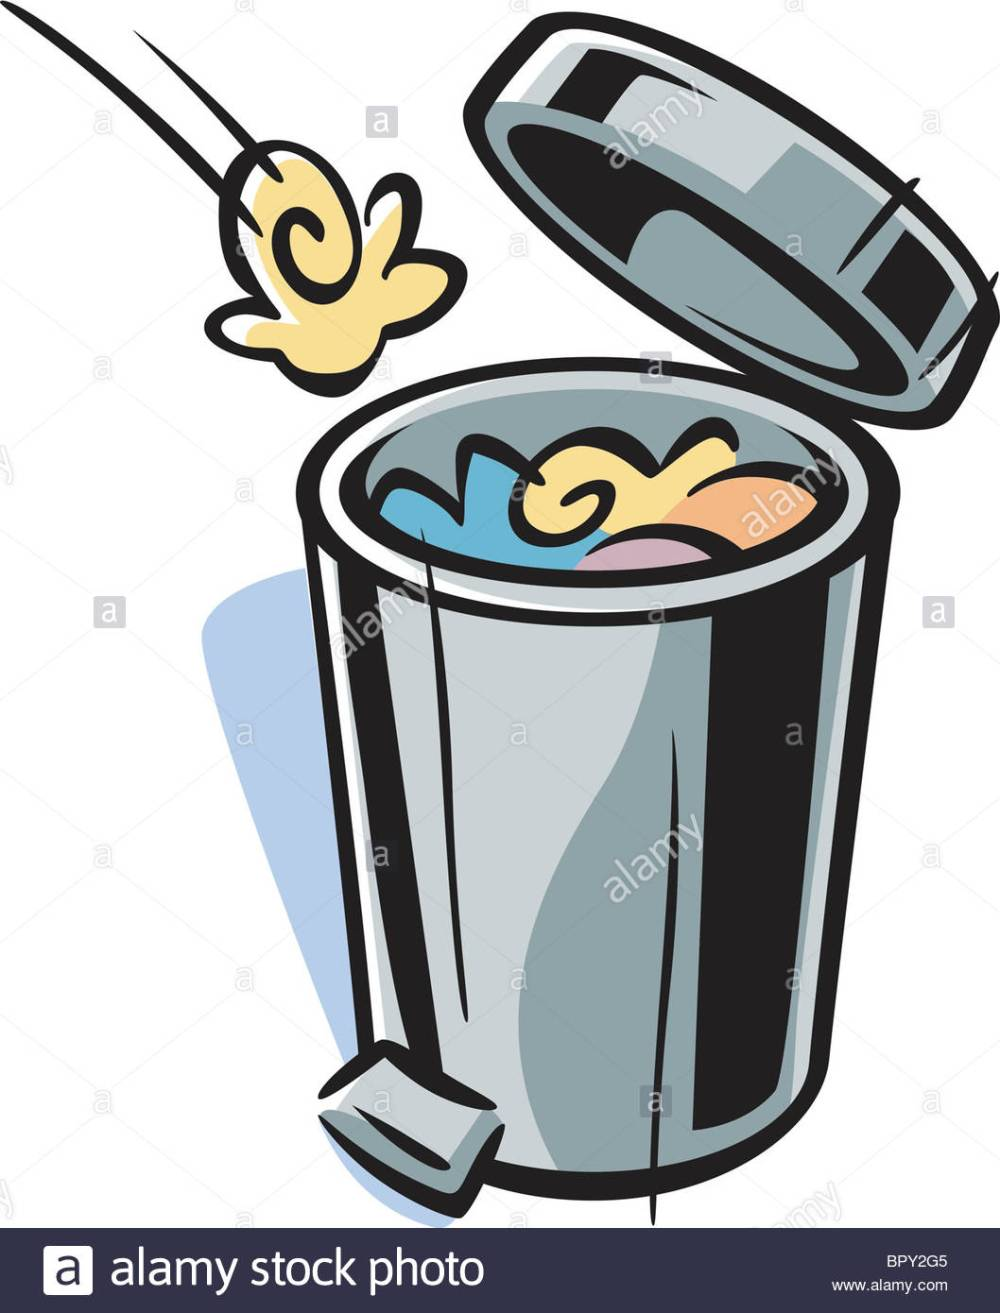 medium resolution of 1058x1390 cartoon drawing of a trash can stock photo royalty free image